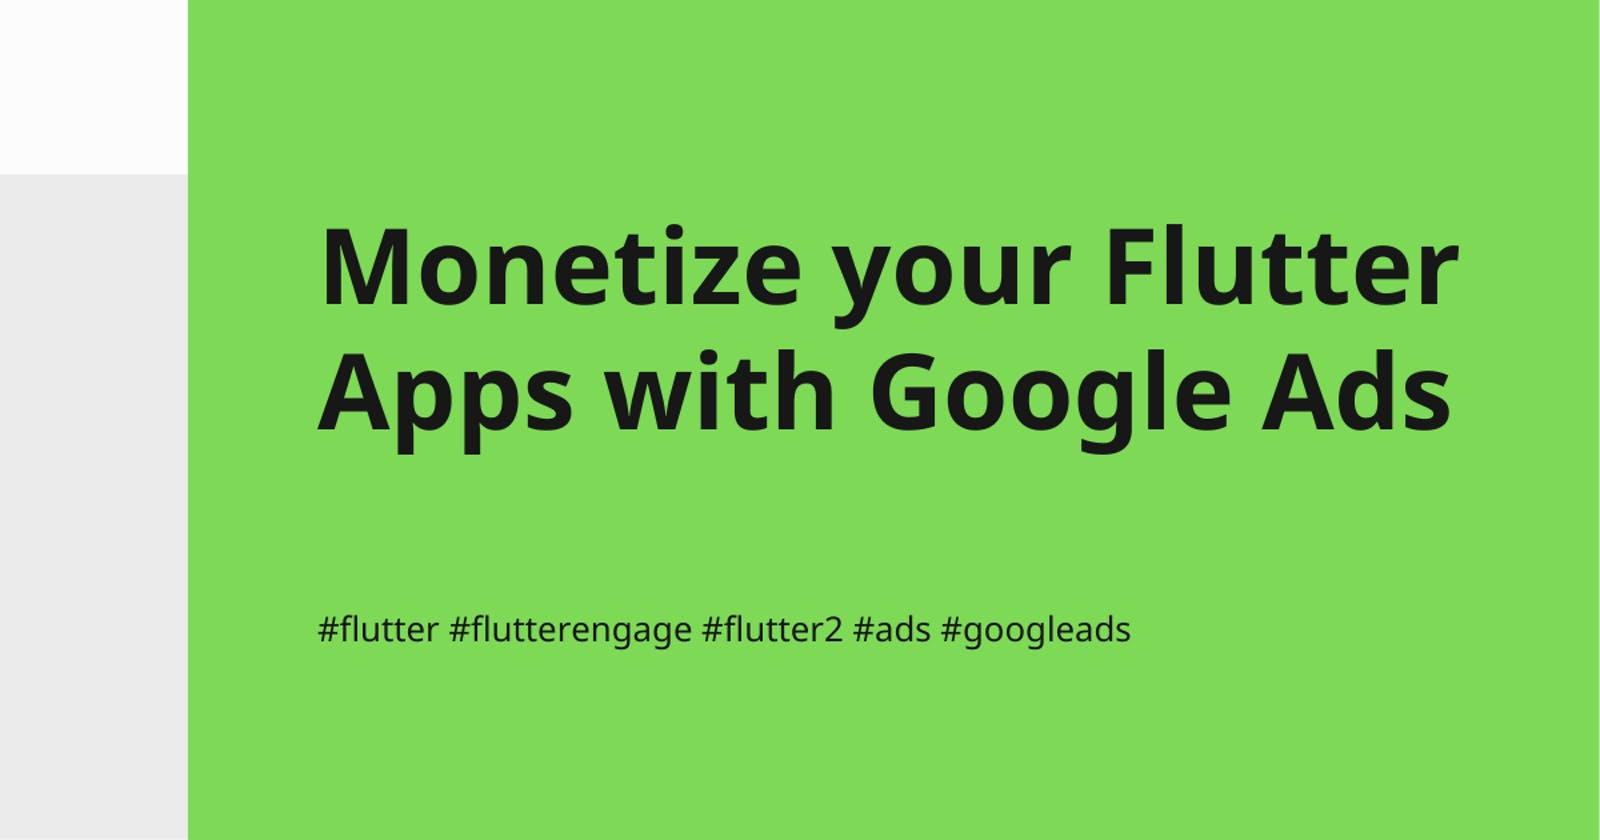 Monetize your Flutter Apps with Google Ads